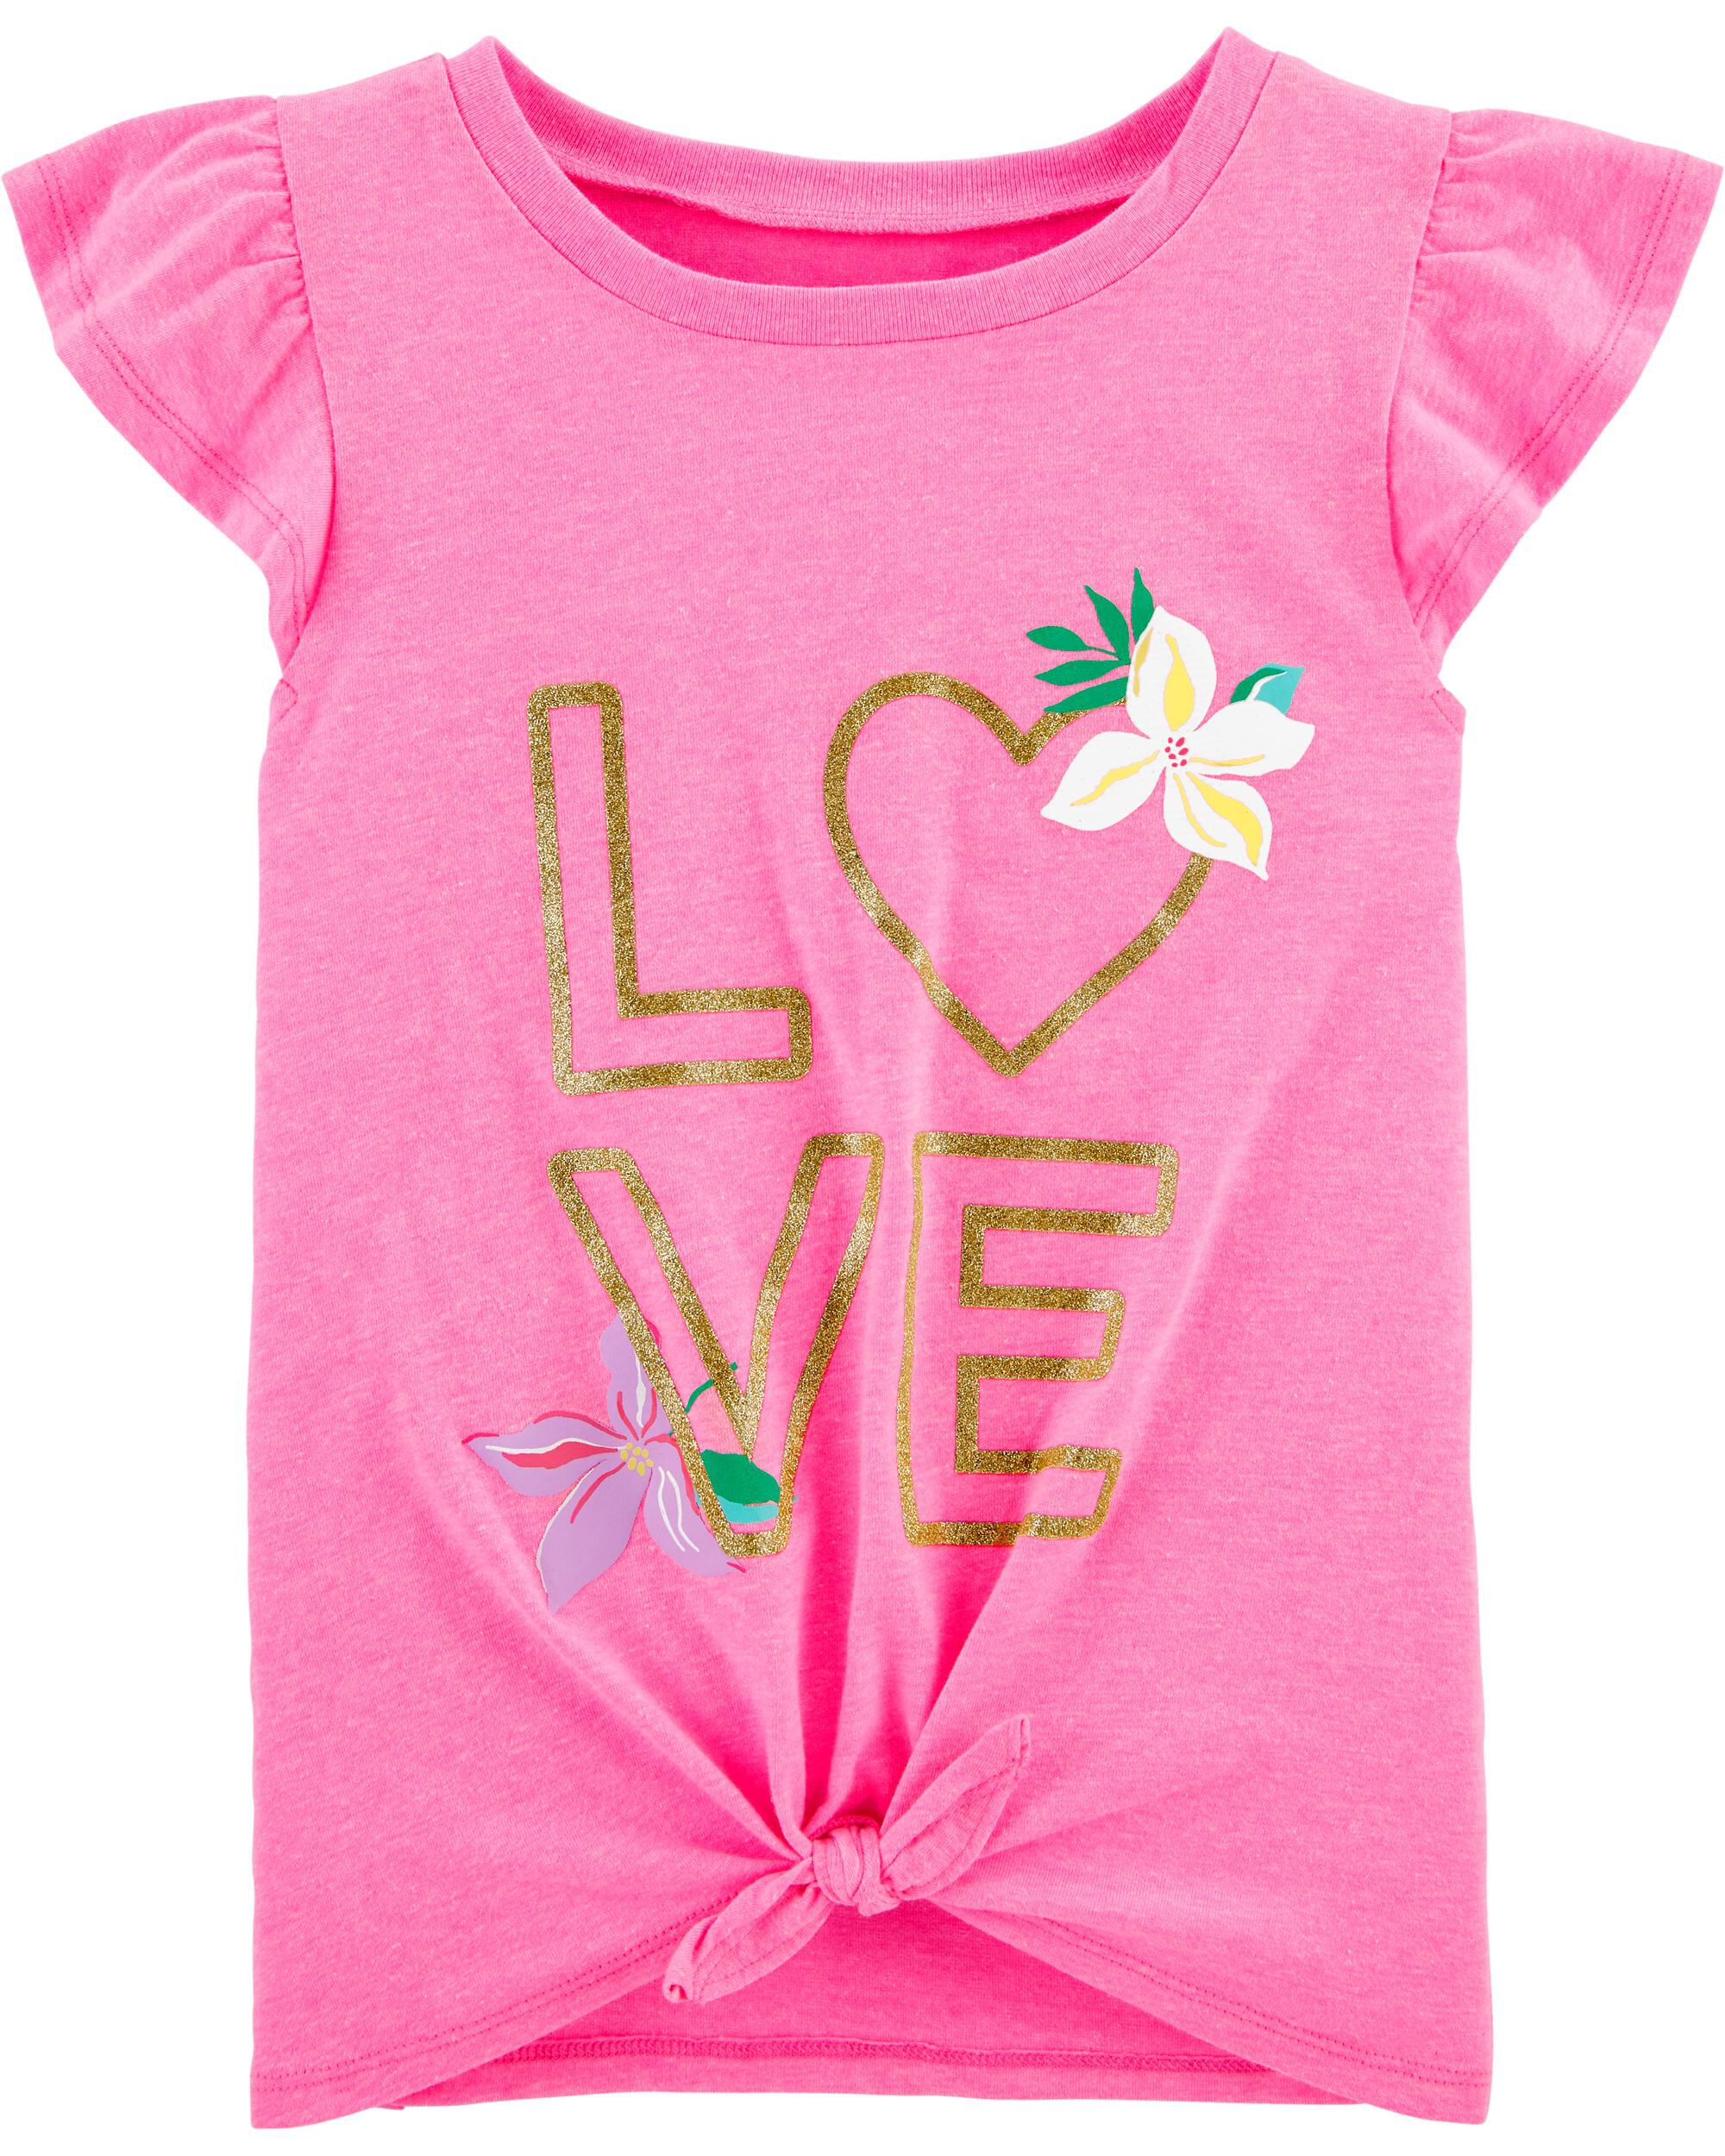 Heart Photography Love Toddler Girls T Shirt Kids Cotton Short Sleeve Ruffle Tee